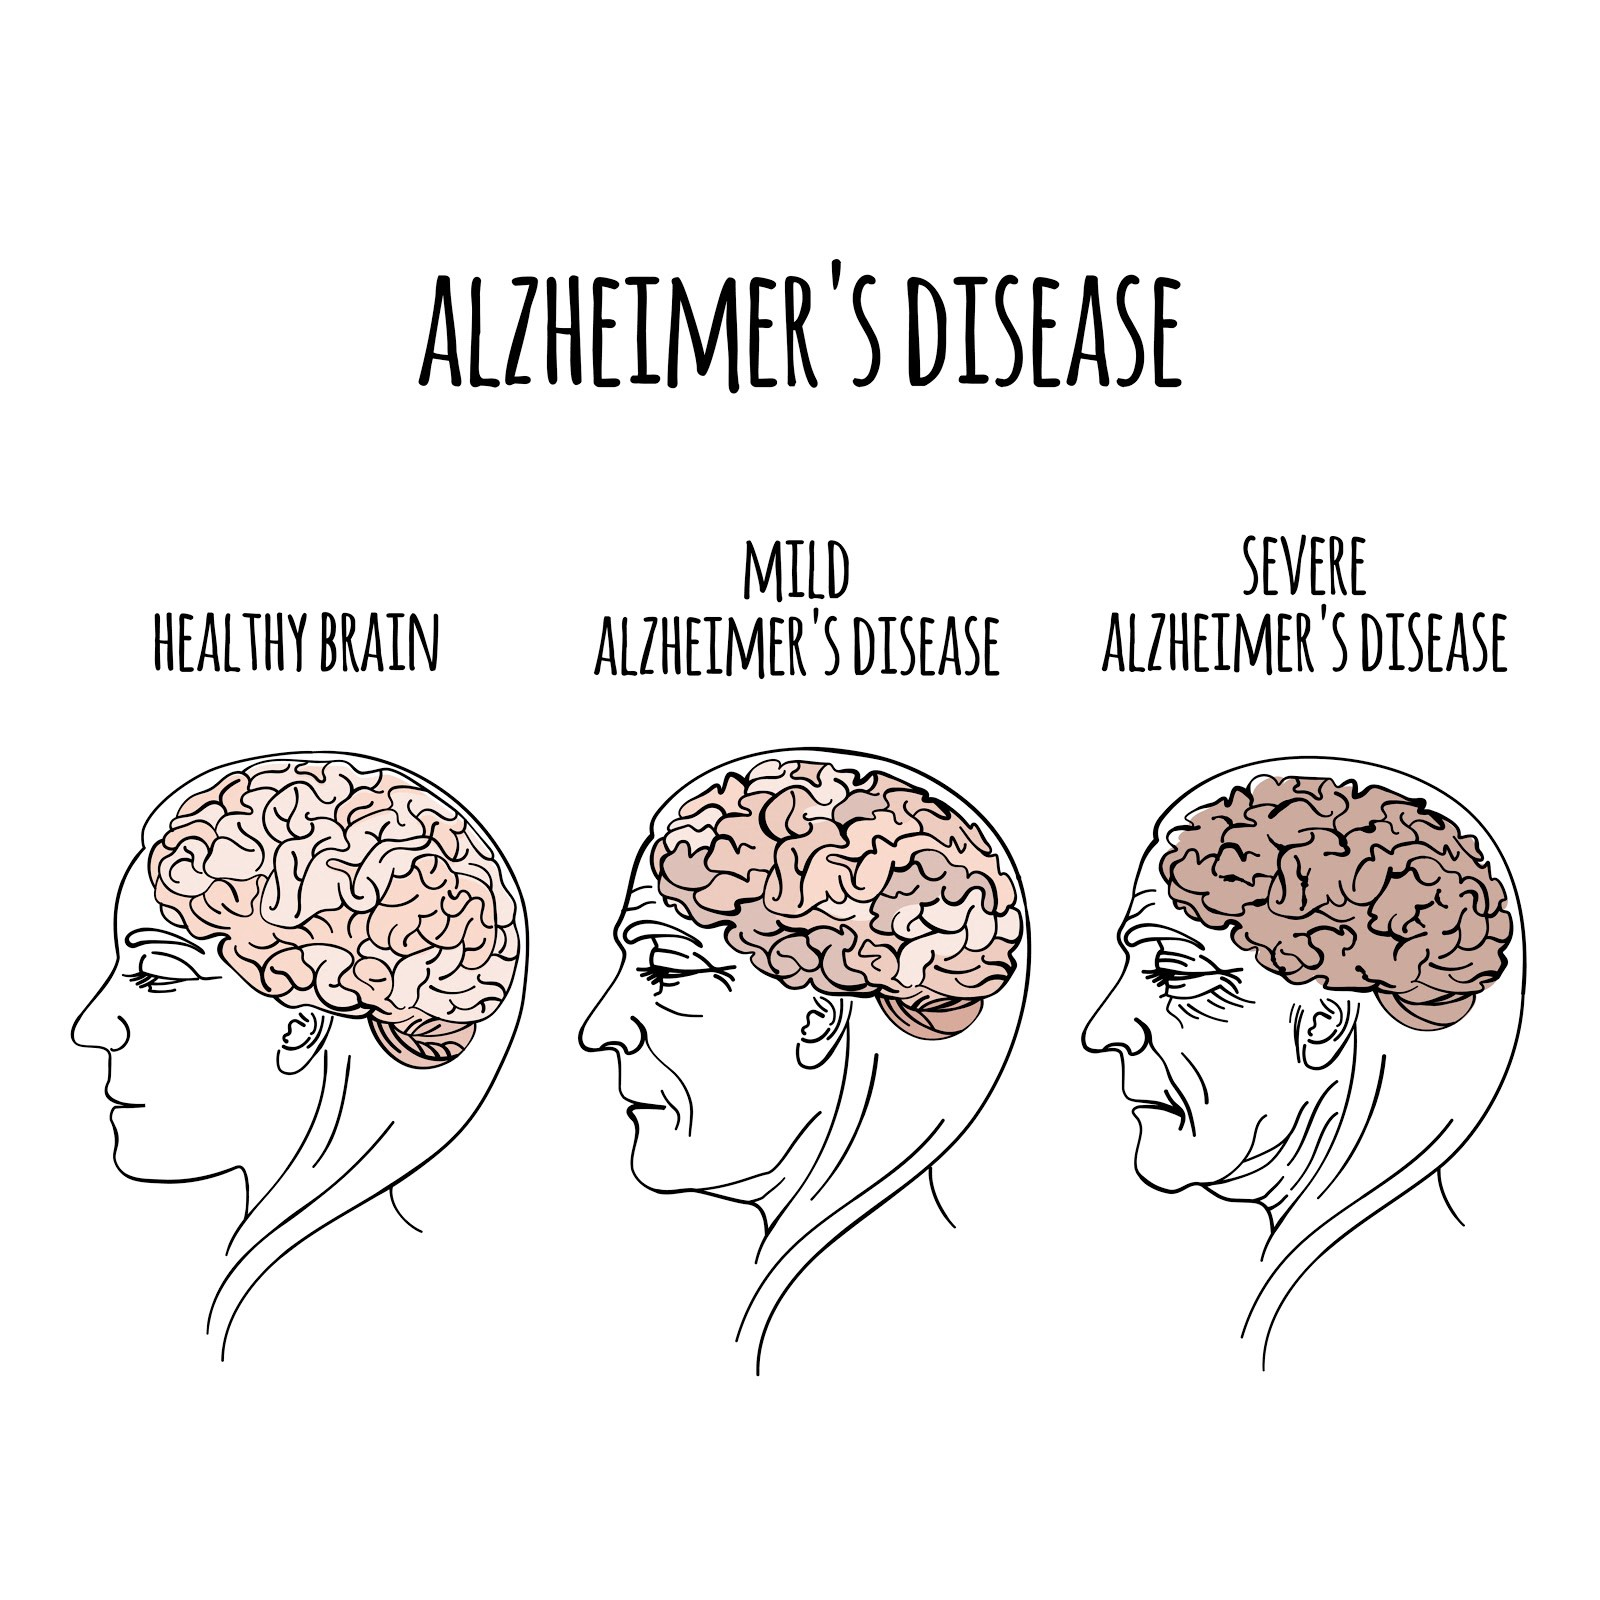 Alzheimer's Disease: The Stages of the Disease